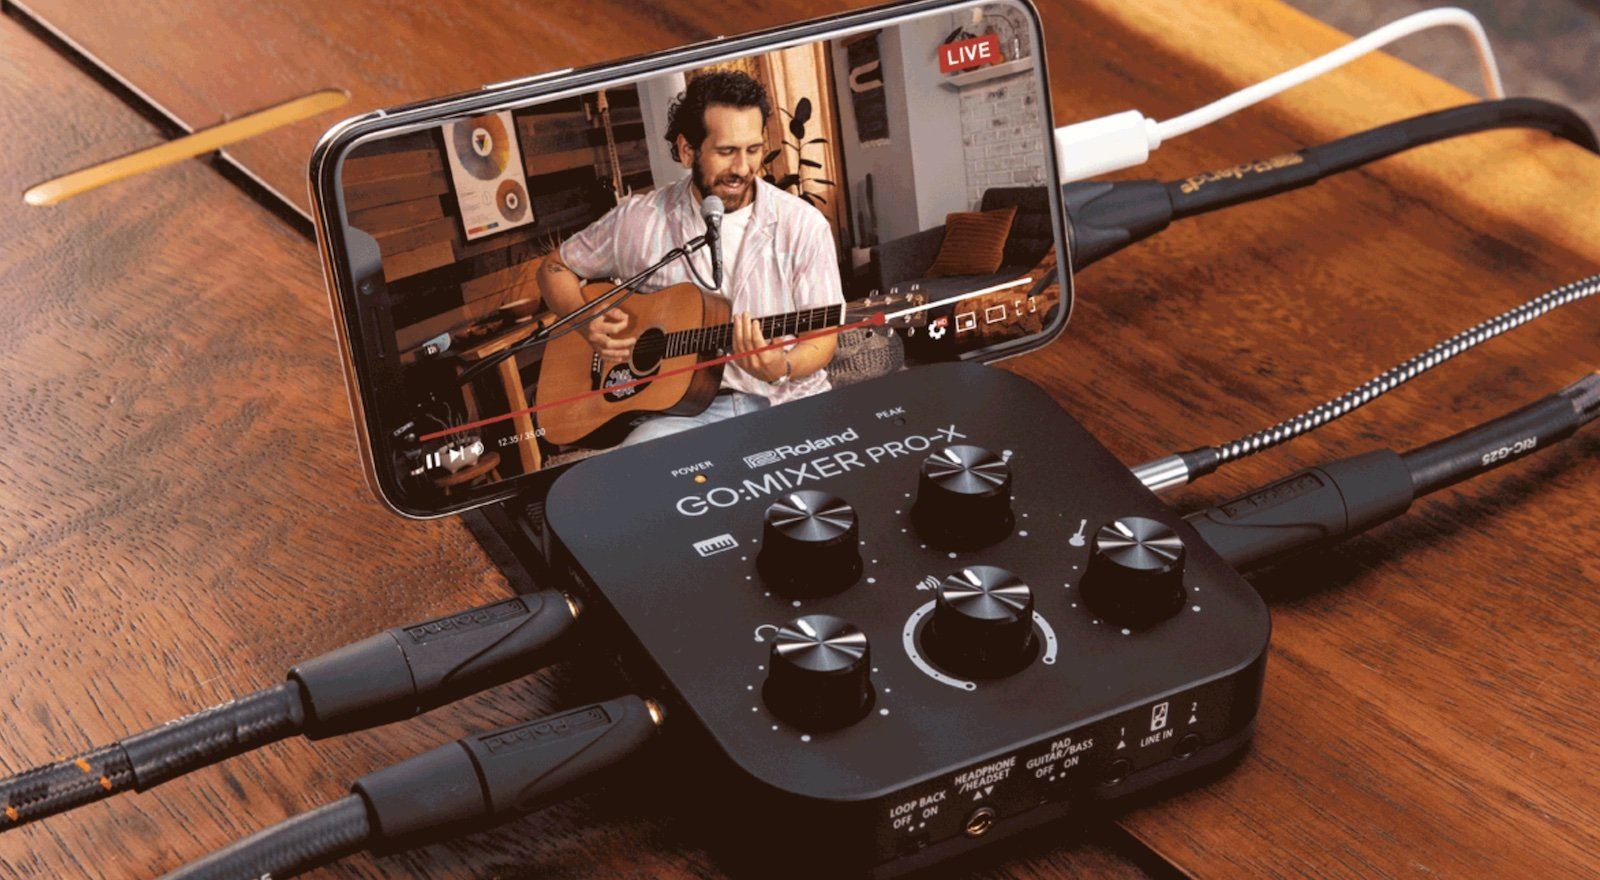 Roland GO:MIXER PRO-X audio mixer connects and mixes up to 7 audio input sources